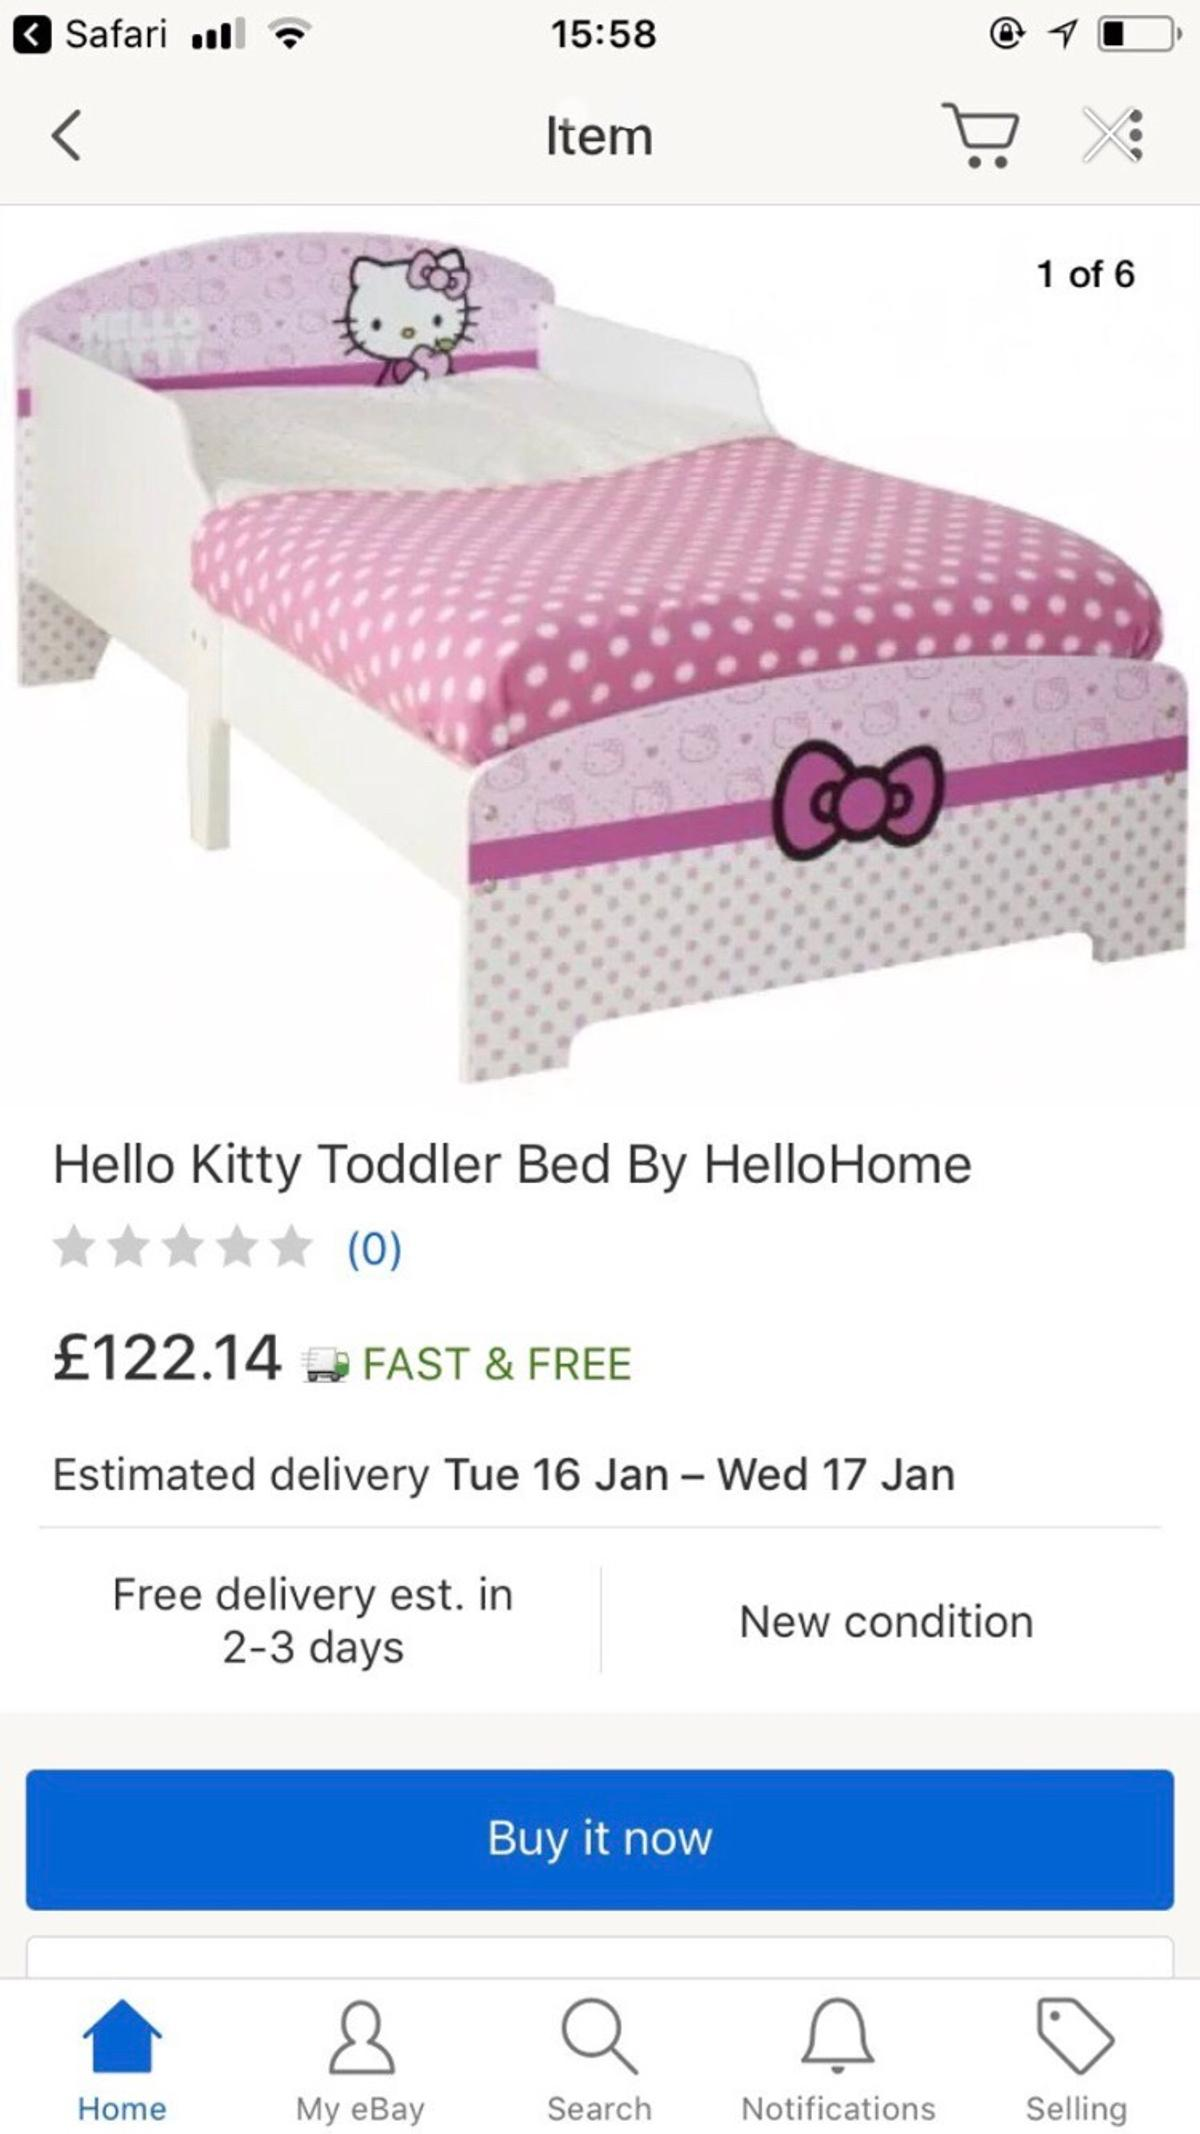 Hello Kitty Toddler Bed.Hello Kitty Toddler Bed